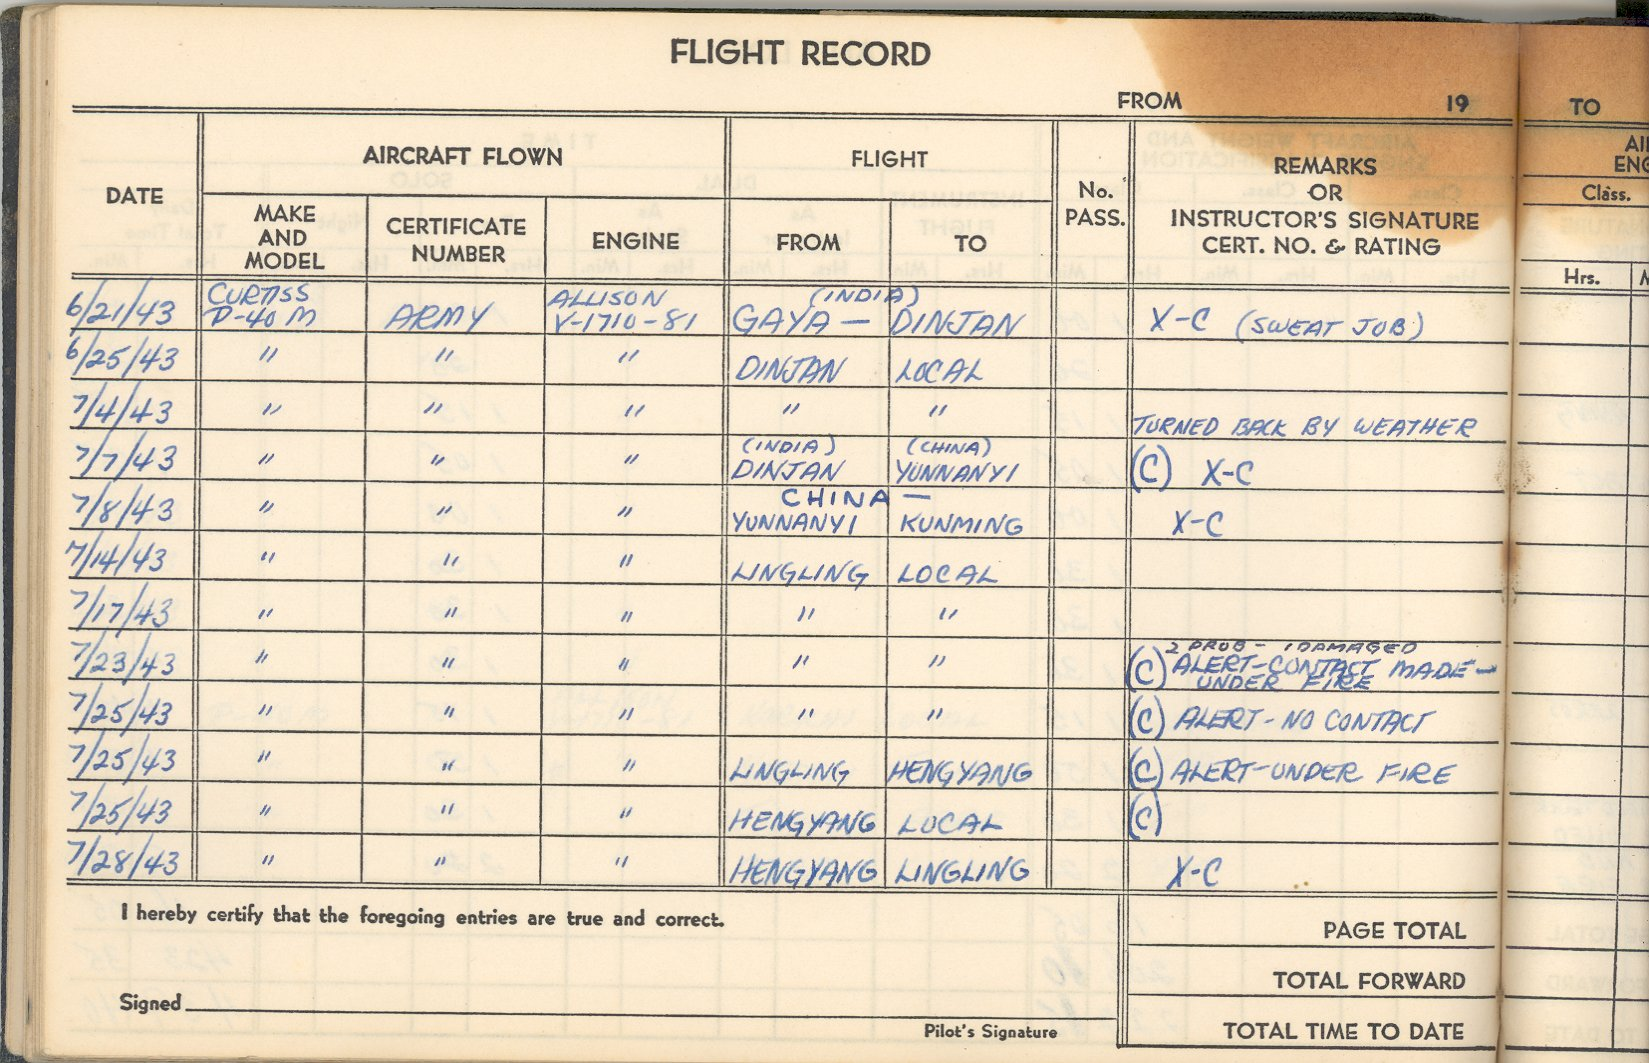 Flight Log Book The flight log